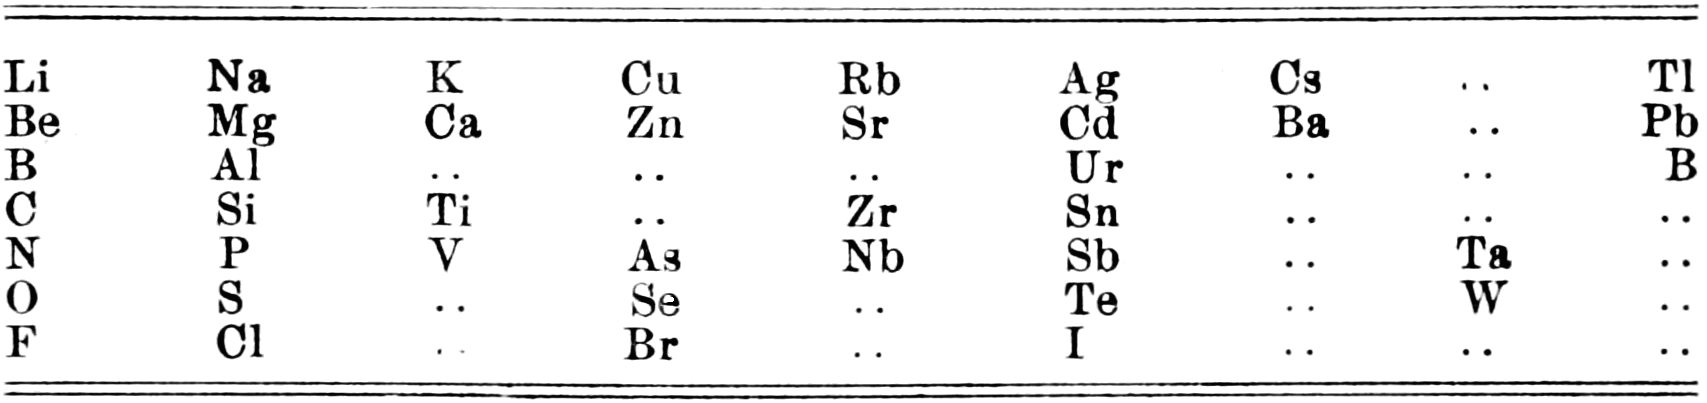 PSM V59 D169 Mendeleyev horizontal table 1868.png